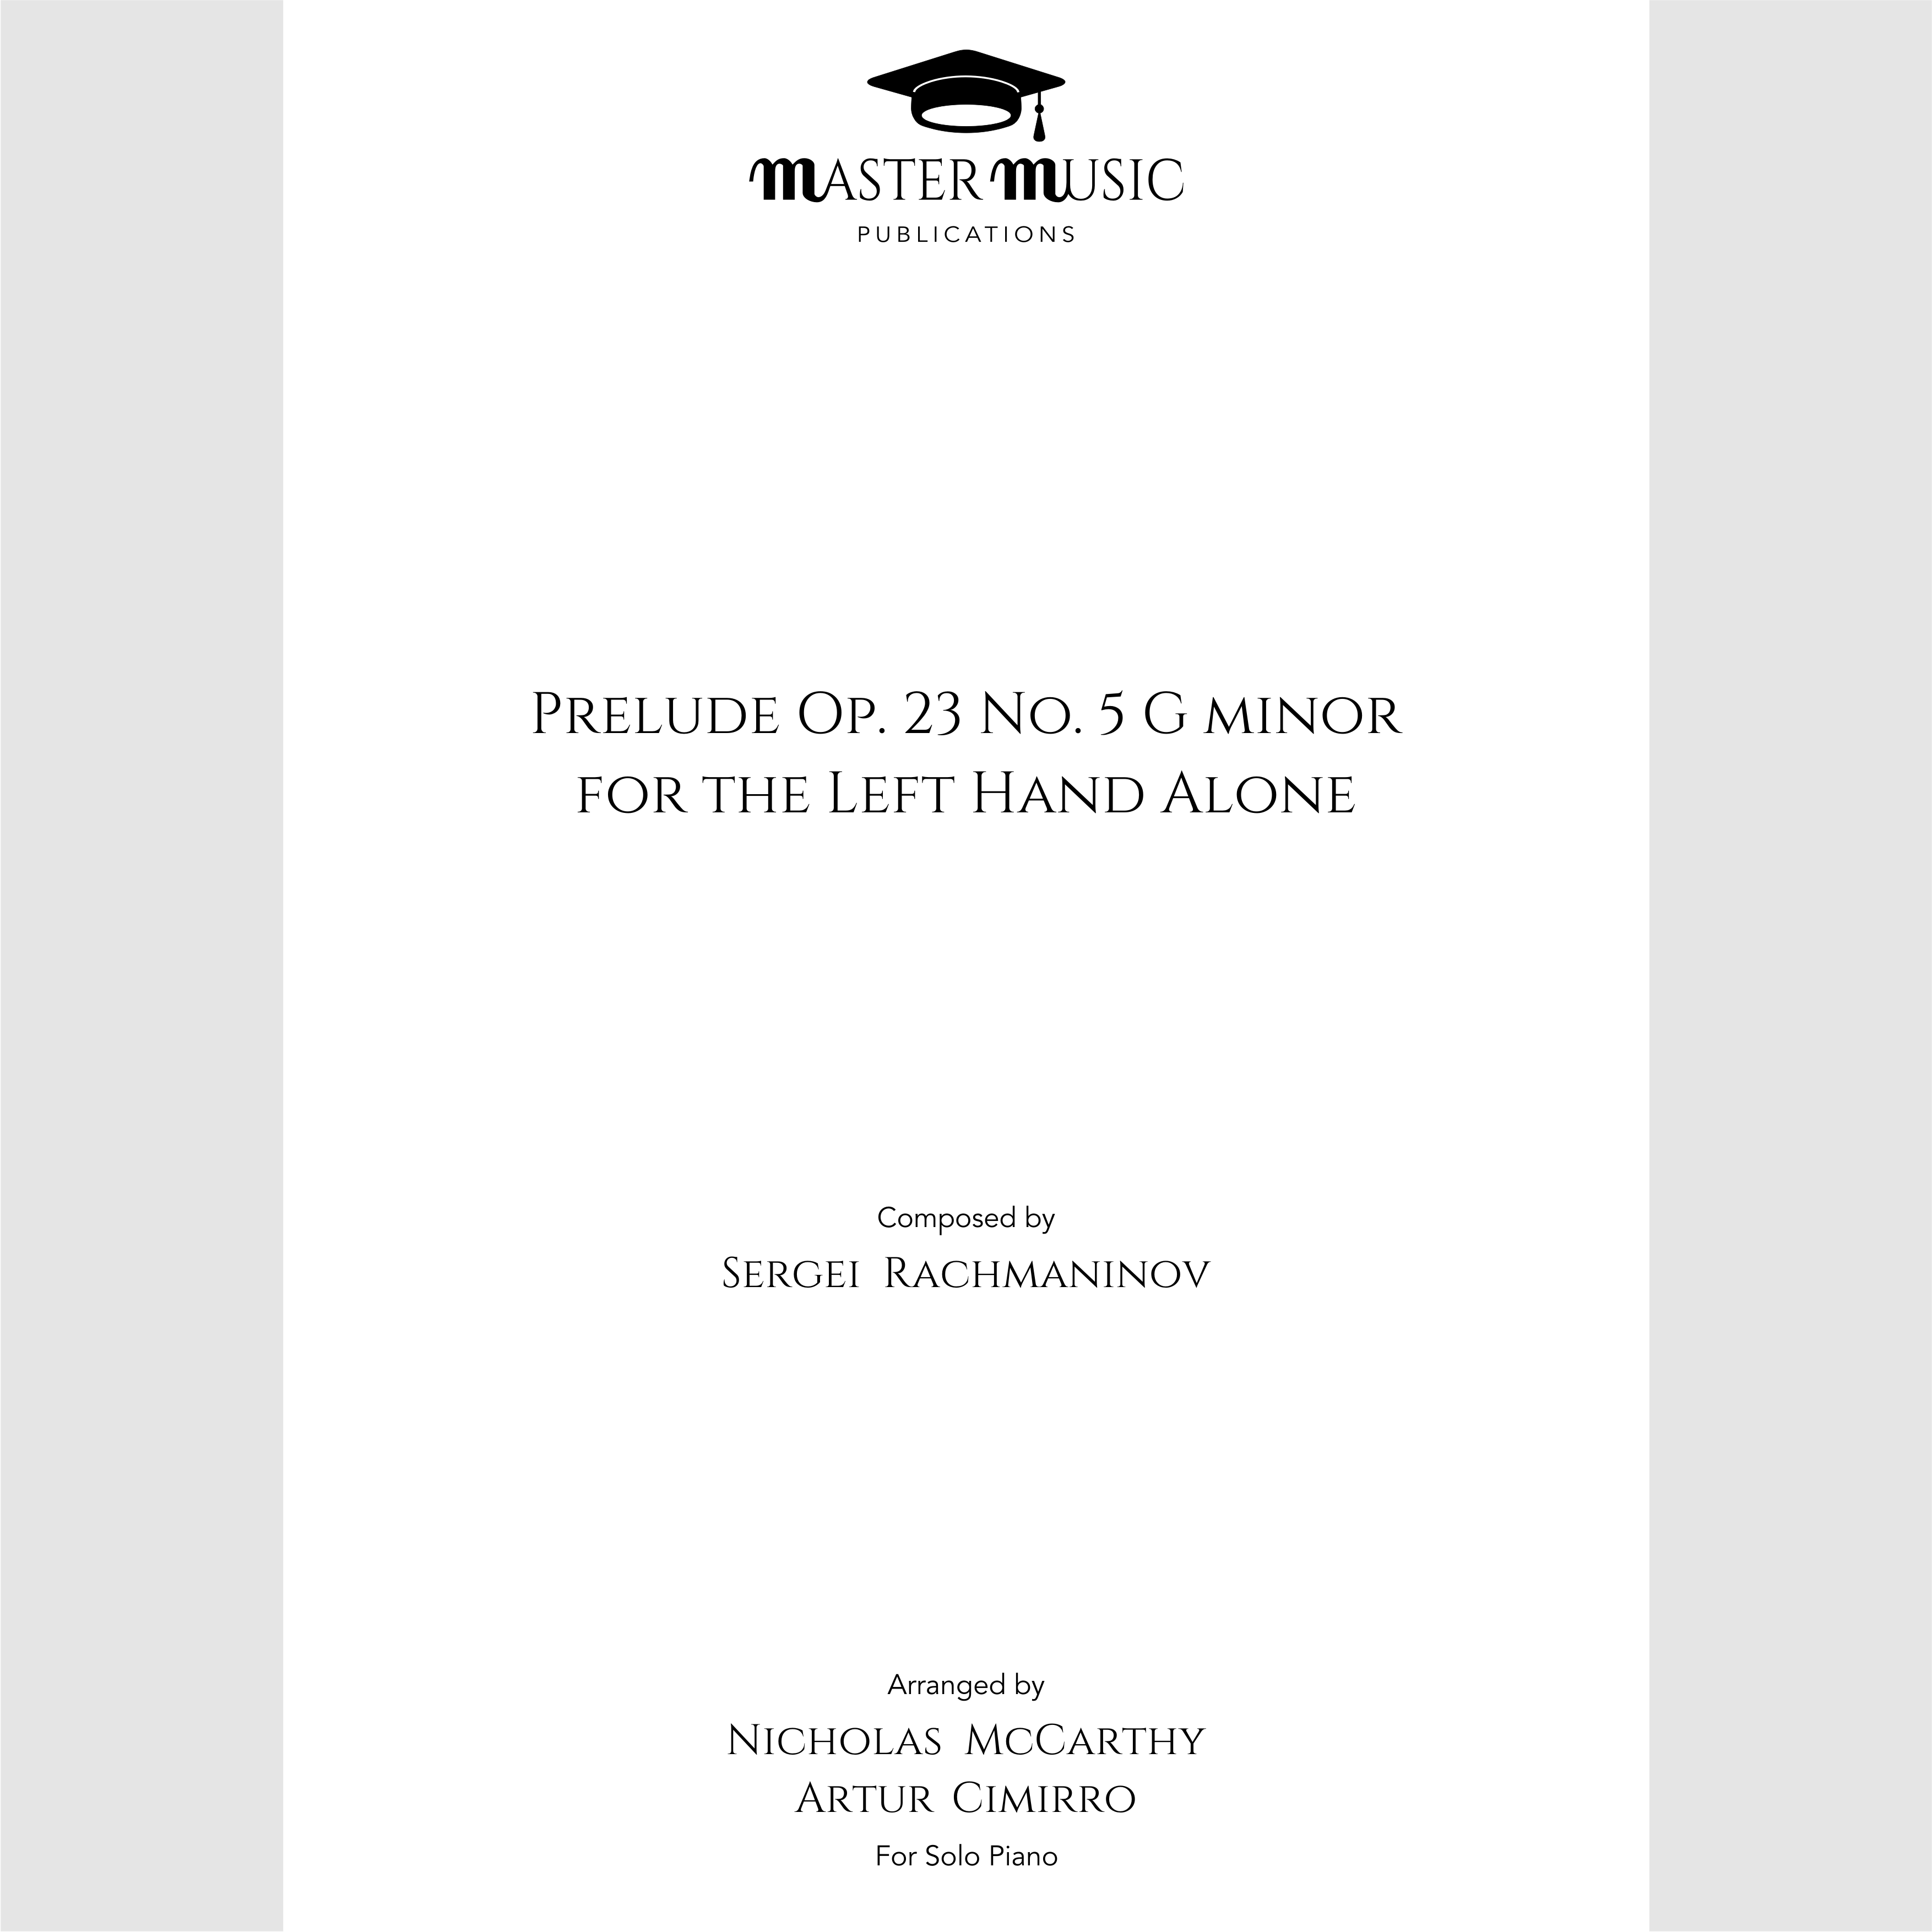 MMP0000072-73_Sample_1_Master_Music_Publications